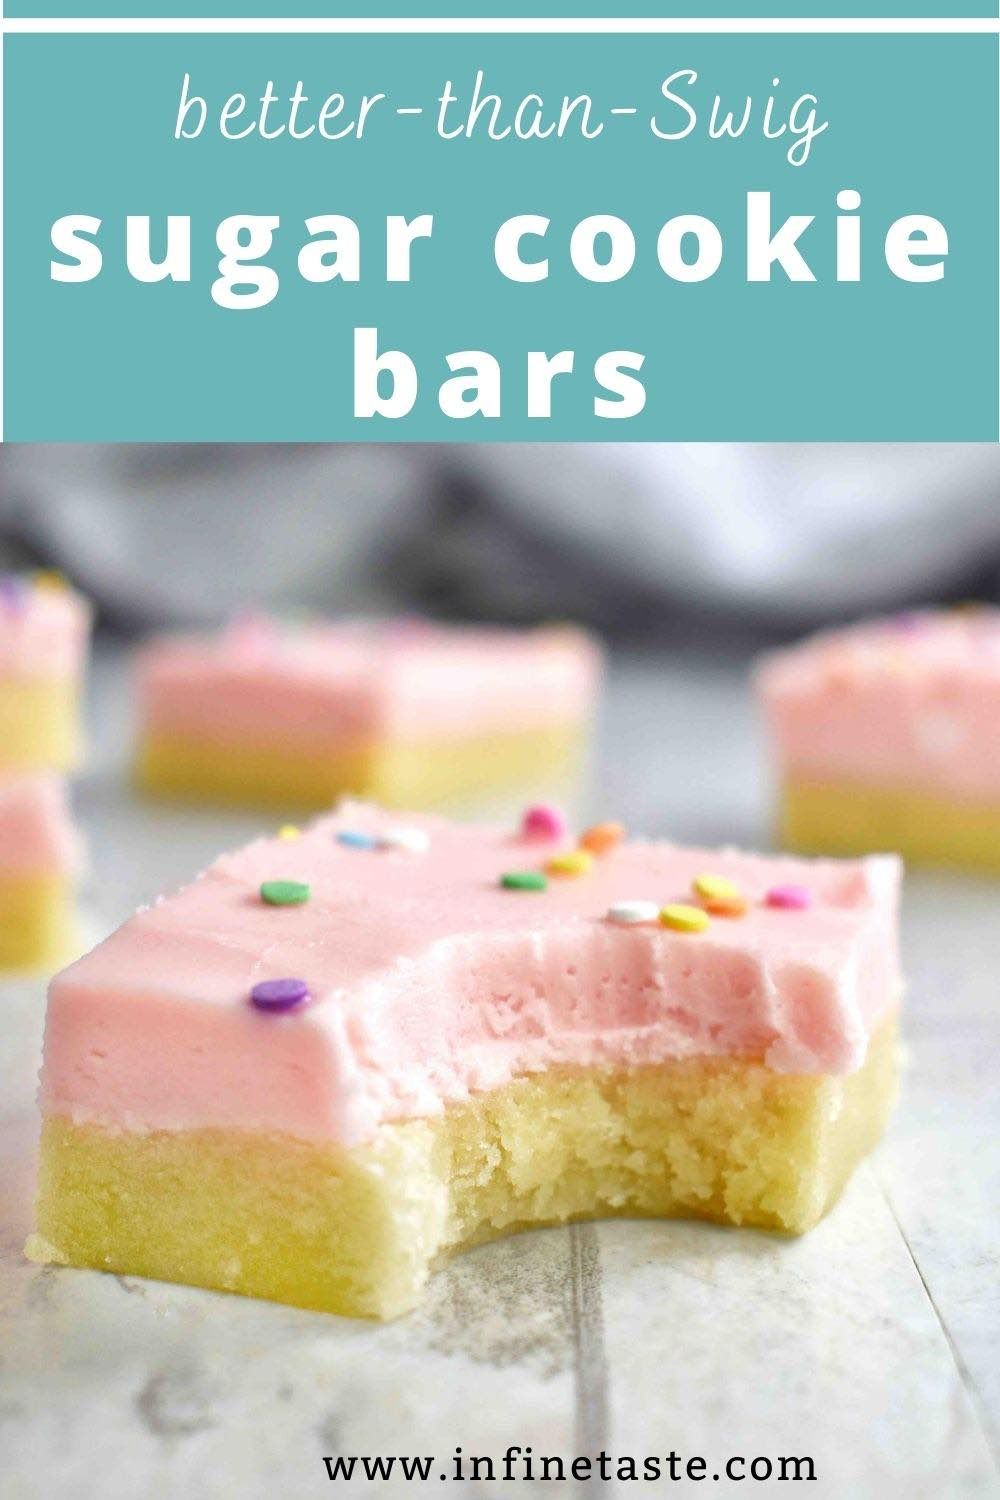 These Swig style sugar cookie bars are super soft, sugar cookie bars are frosted with buttery almond buttercream frosting! They're super easy and better than Swig Sugar Cookies any day! #ChristmasCookies #ChristmasCookiesRecipes #CookiesRecipesChristmas #EasyChristmasCookies #SugarCookies #EasySugarCookies #SugarCookieRecipes #SugarCookieRecipeEasy #AlmondCookie #FrostedSugarCookie #BestSugarCookieRecipes #SoftSugarCookies #EasyCookieRecipes